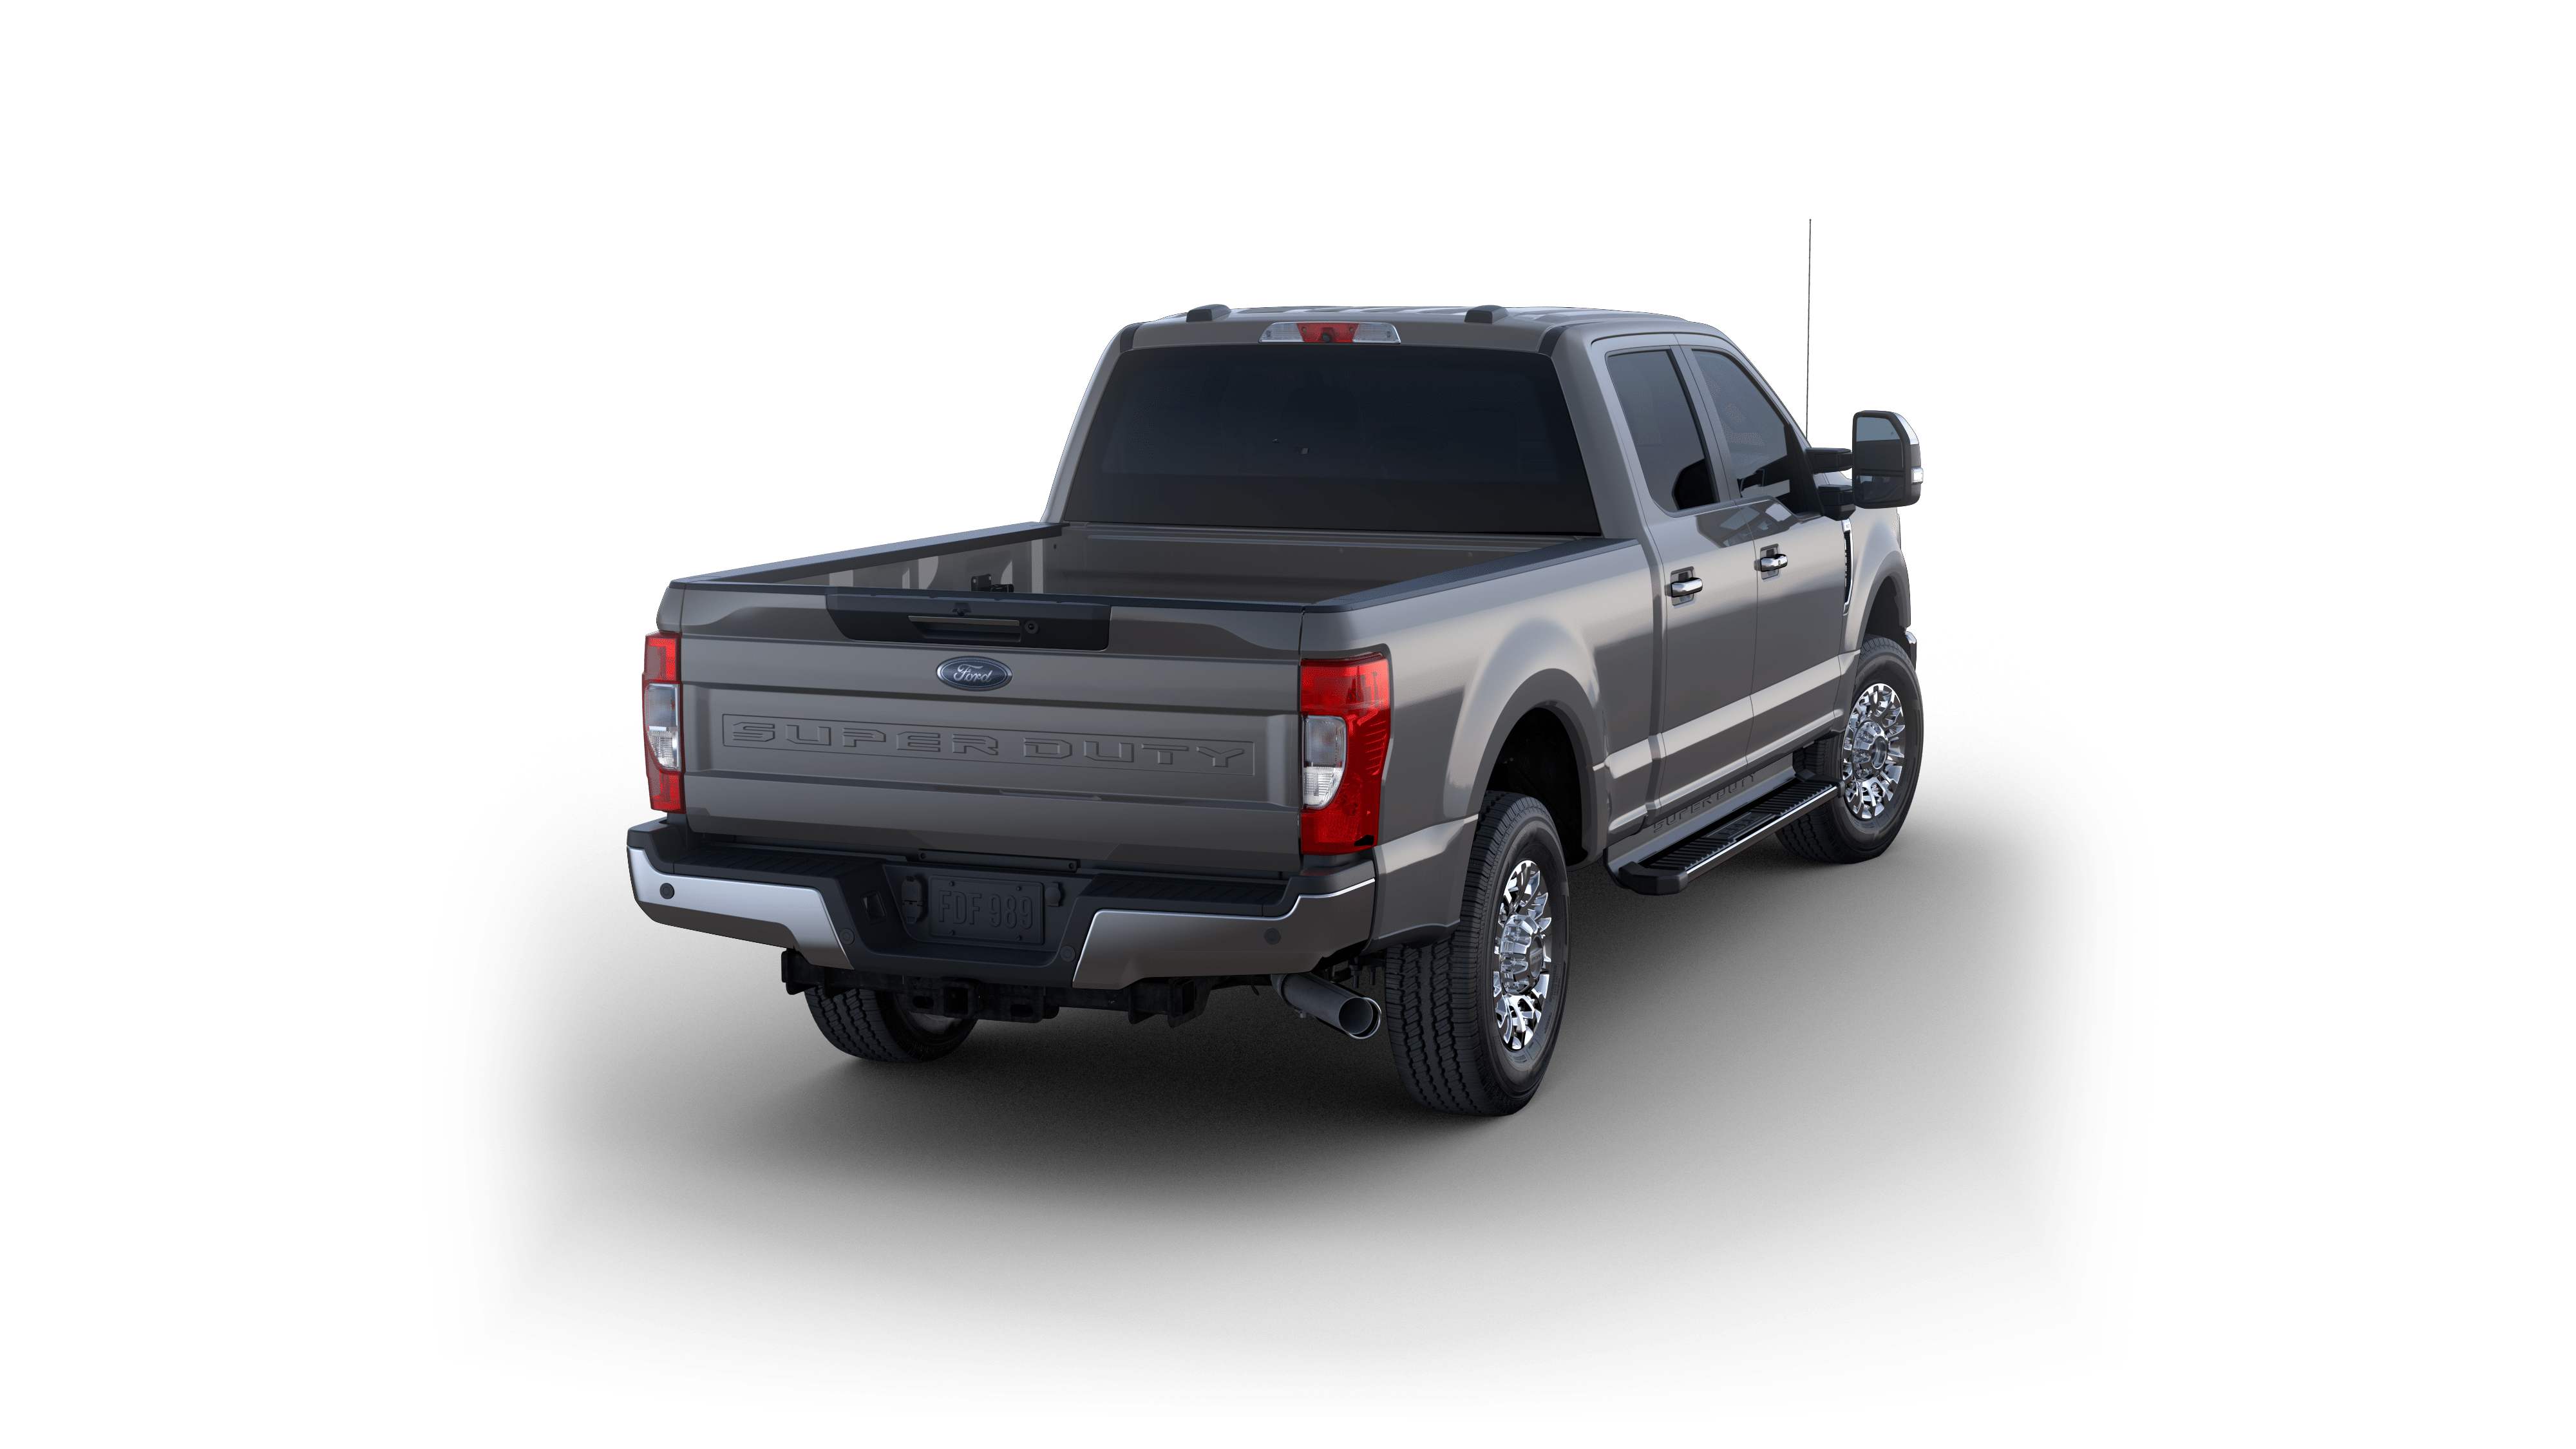 New Carbonized Gray Metallic 2021 Ford Super Duty F 250 Srw Xlt 4wd Crew Cab 6 75 Box For Sale At Platinum Ford In Terrell F210029